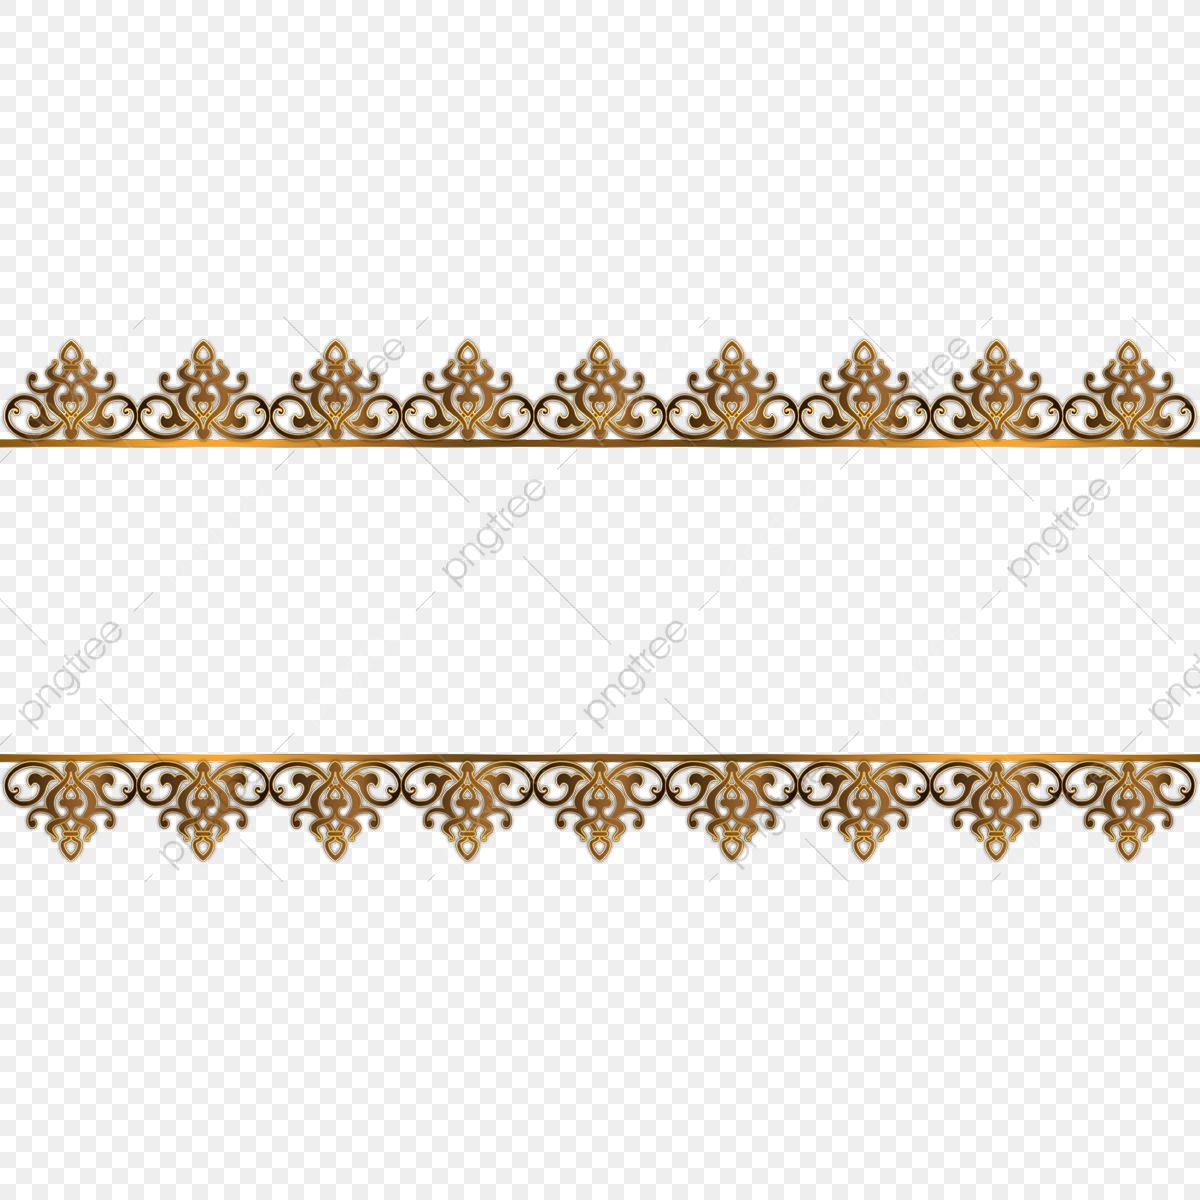 Golden Title Border Png Free Download Luxury Graphic Styles Graphics Png Transparent Clipart Image And Psd File For Free Download Gold Logo Design Background Patterns Watercolor Flower Background